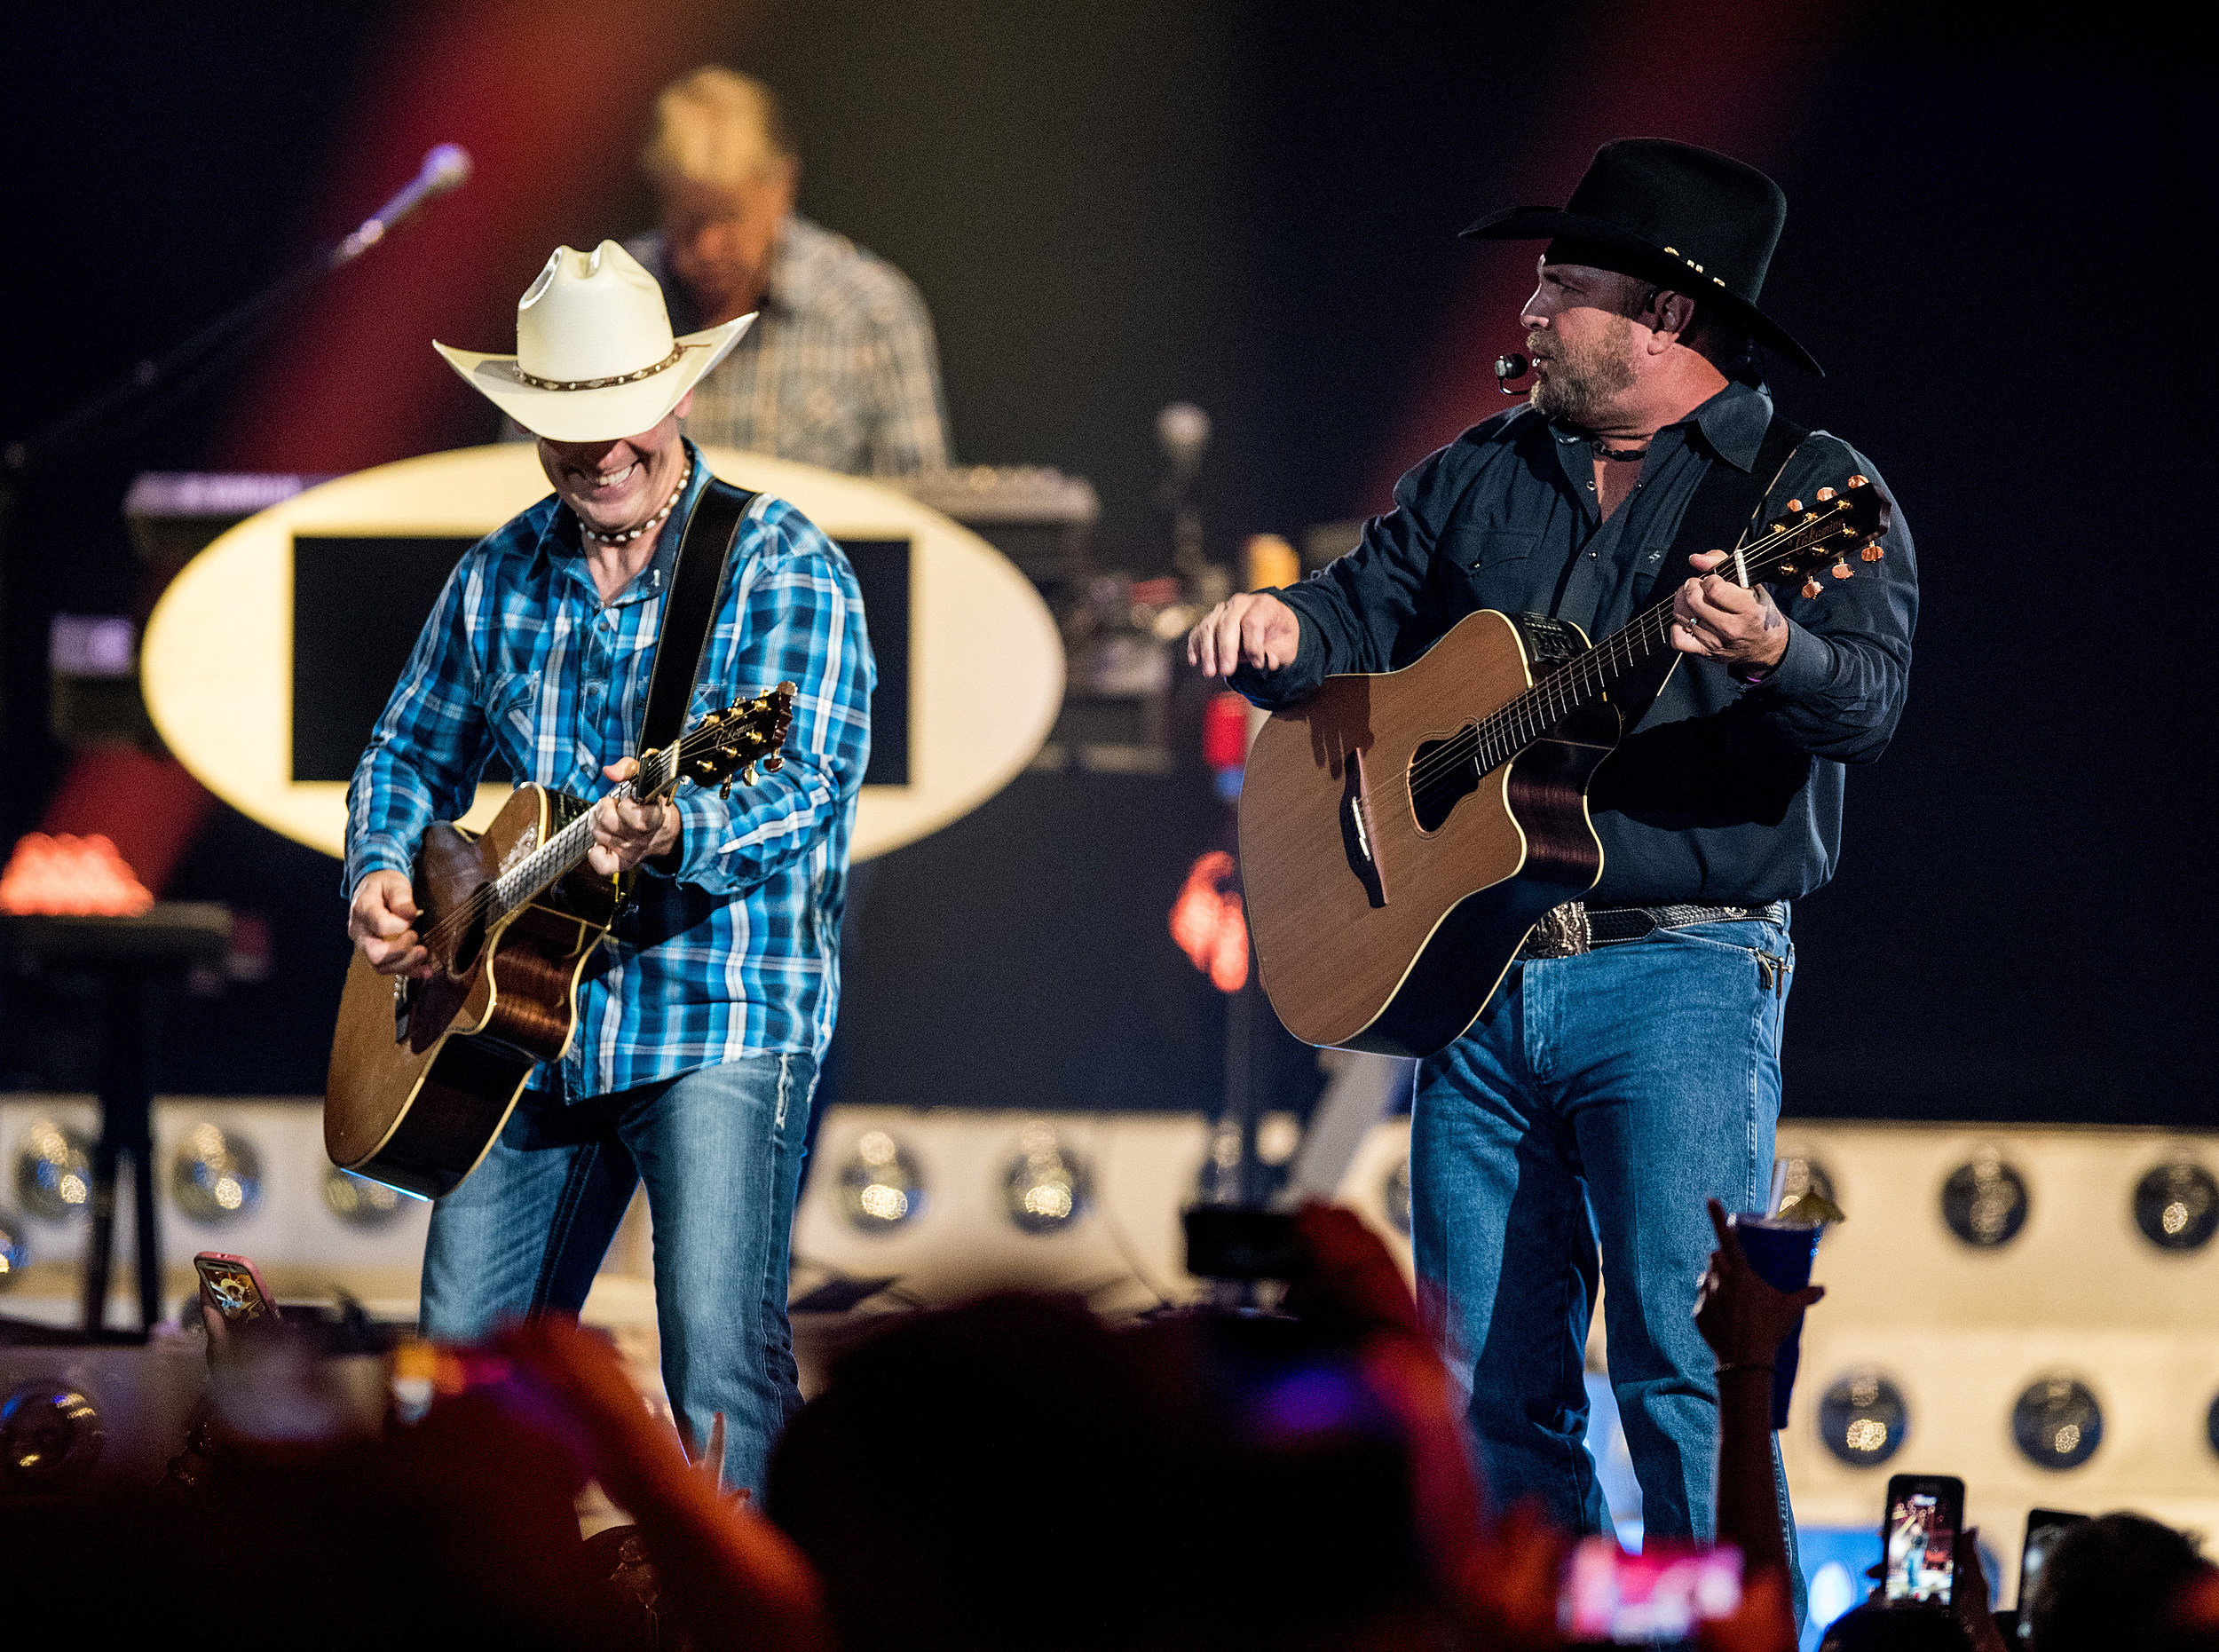 Garth Brooks Tickets Still Available For This Weekend